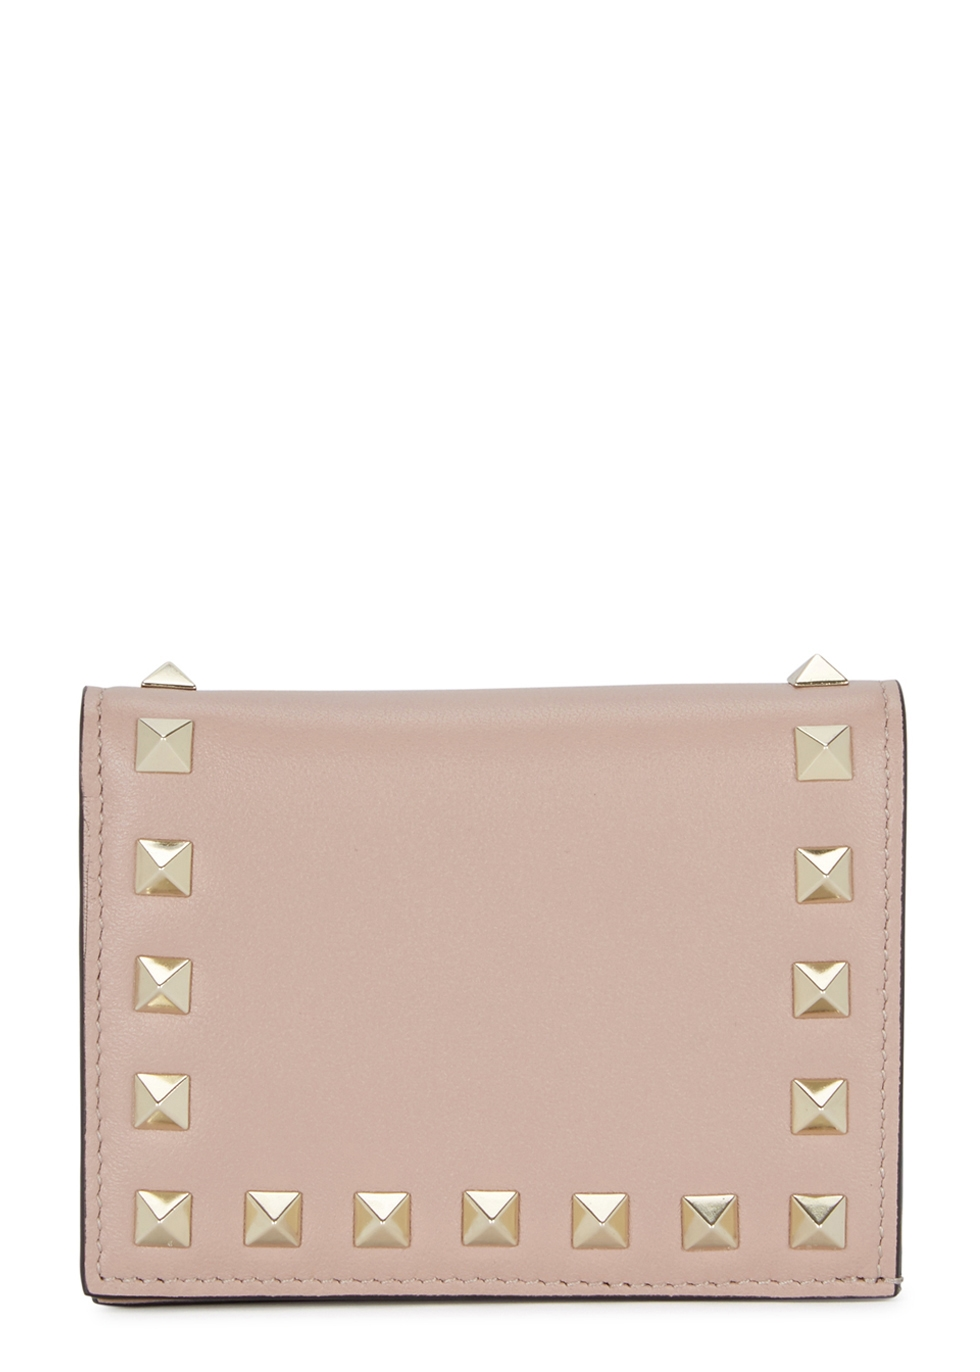 ROCKSTUD BLUSH LEATHER WALLET